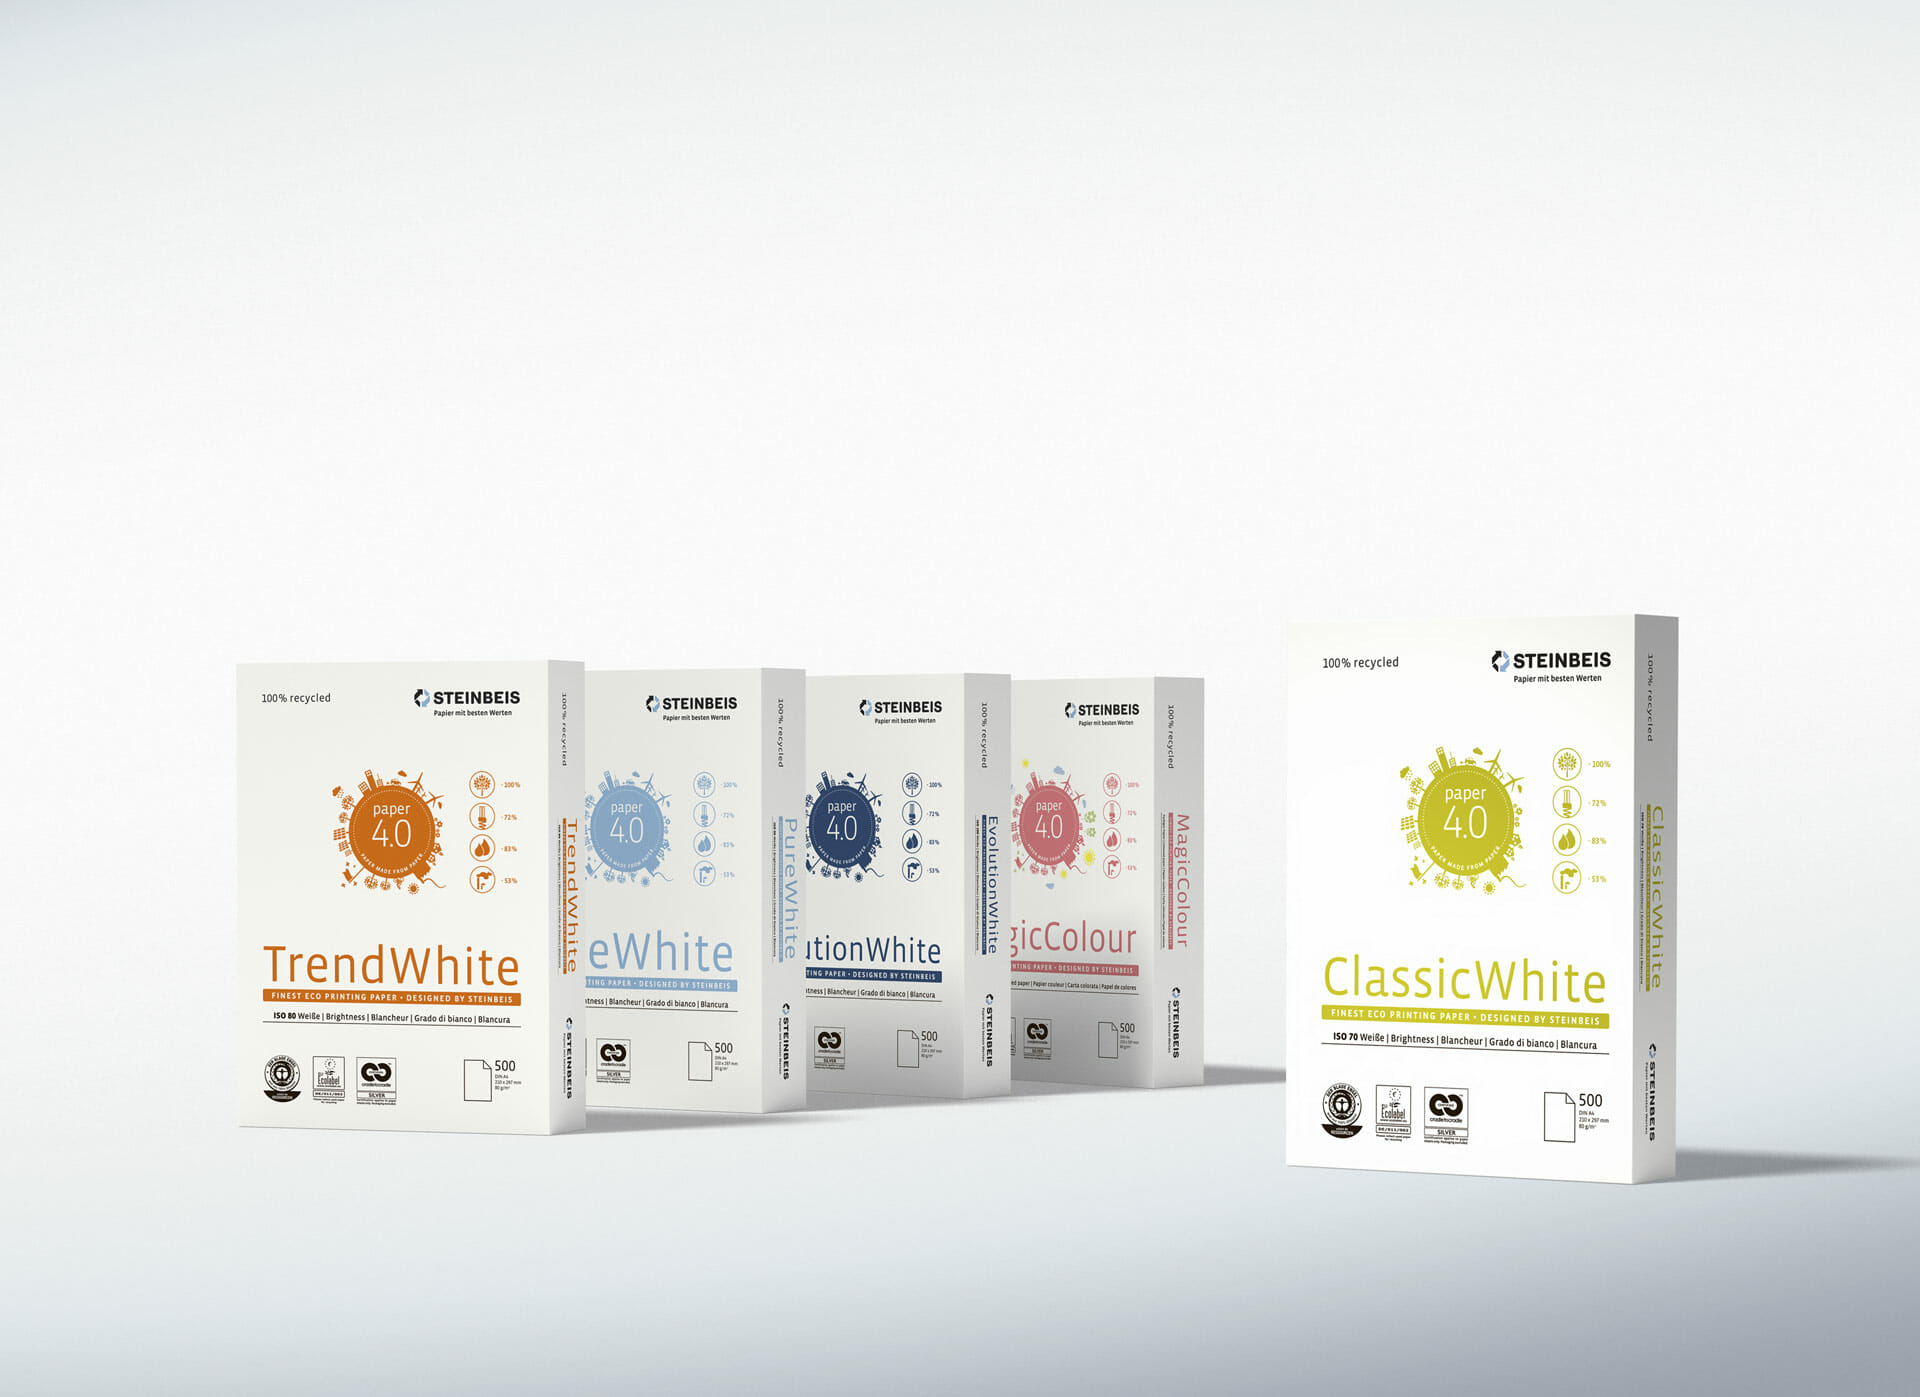 Steinbeis Papier Packaging Redesign 2015 Gruppe